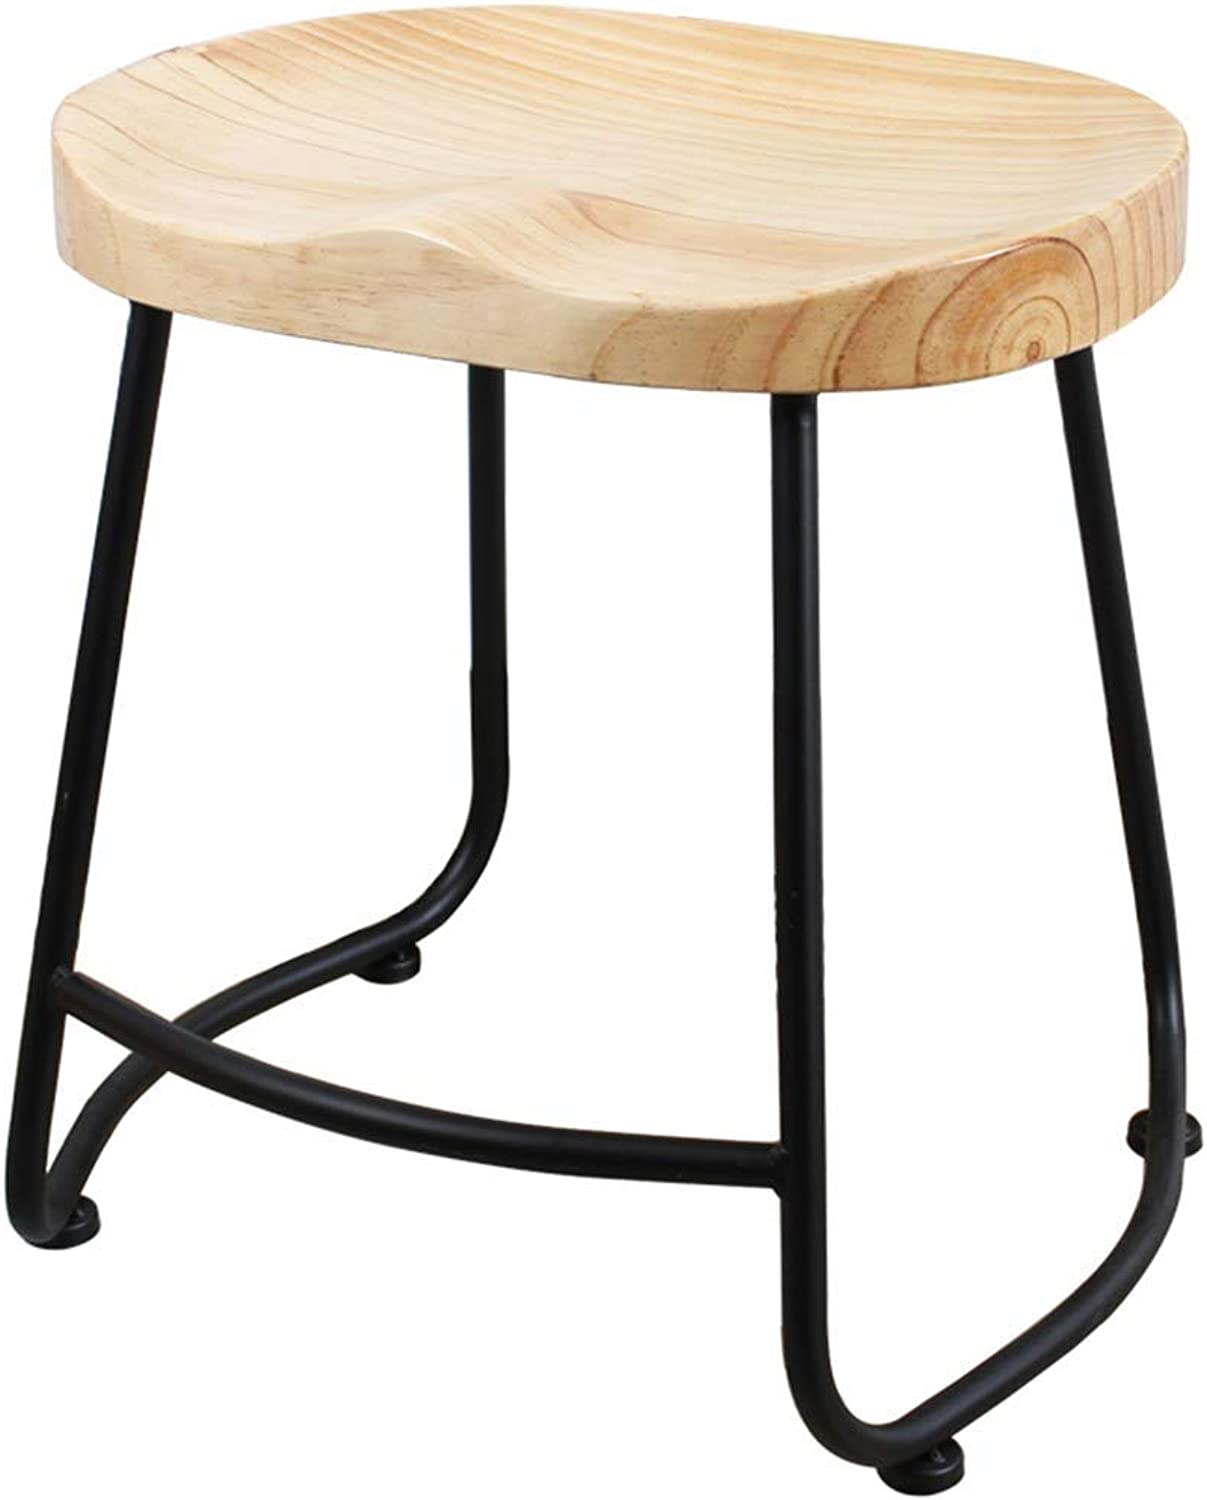 Bar Stool Modern Minimalist Home Solid Wood High Stool Fashion Creative Multi-Function Bar Chair Makeup Stool CONGMING (color   Black, Size   35.5  41  45cm)